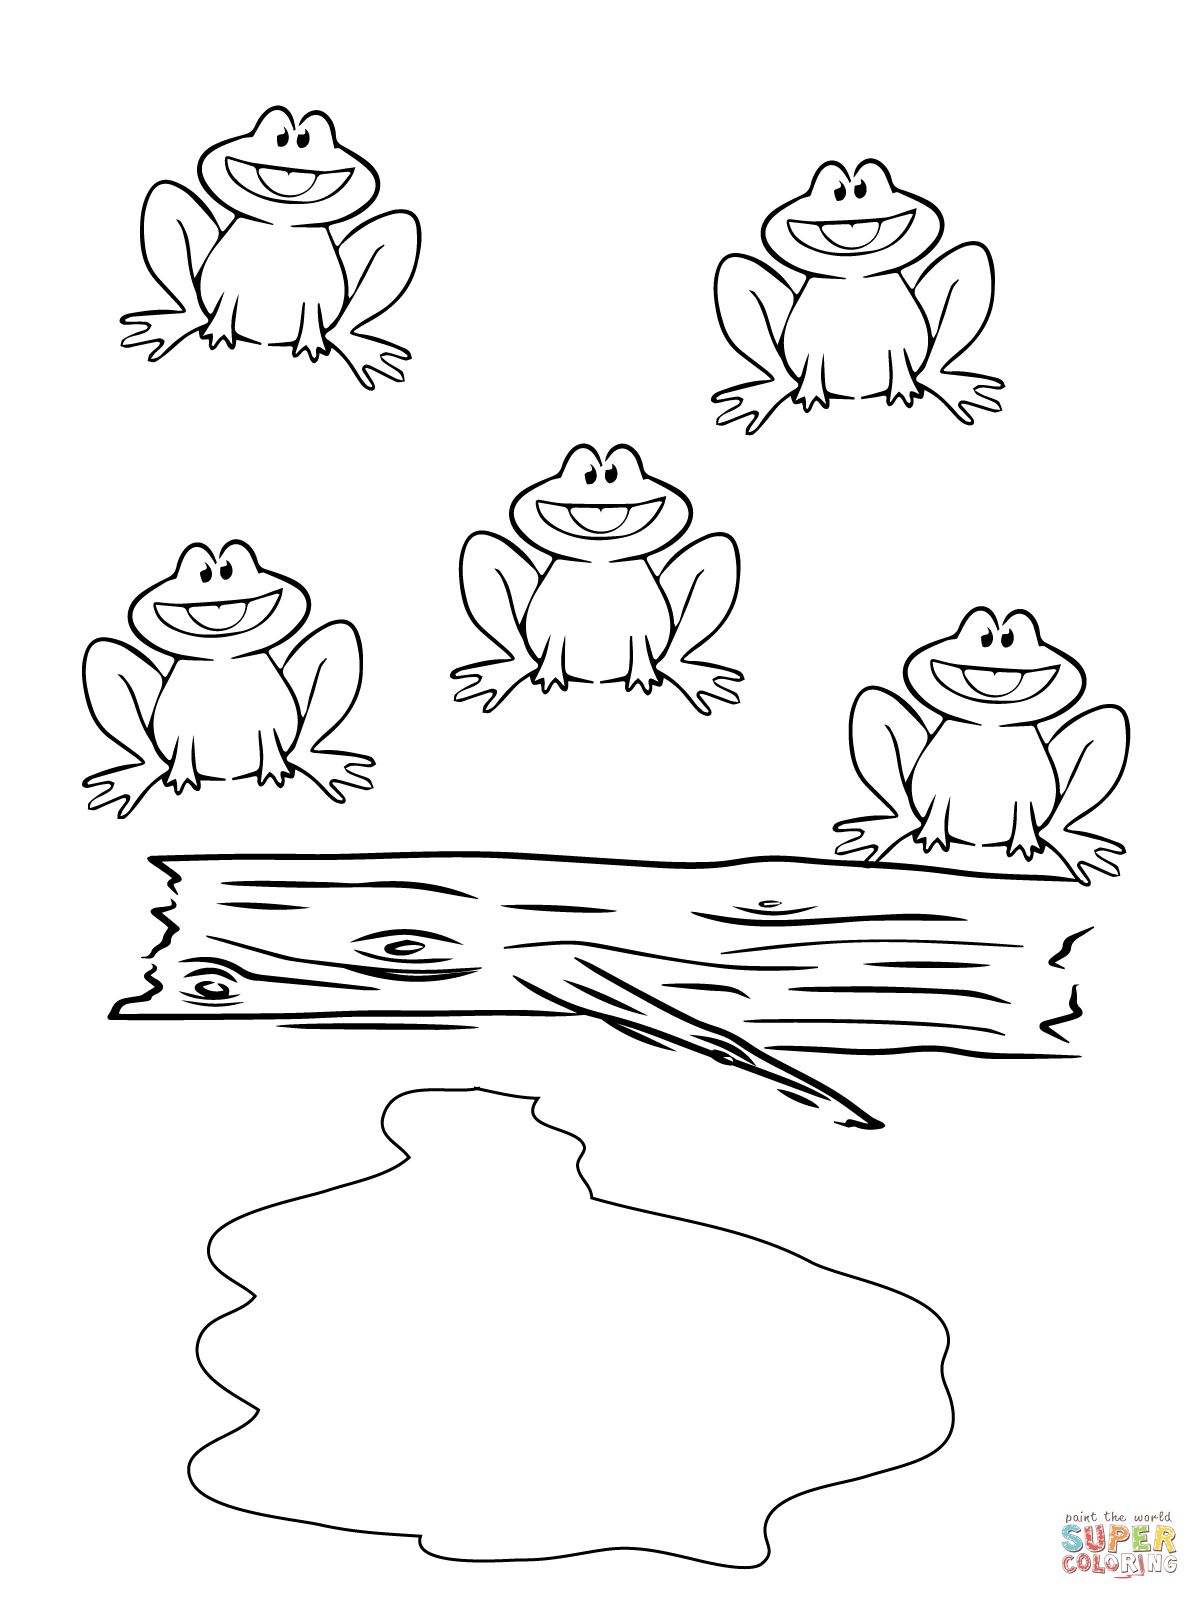 Five Little Speckled Frogs coloring page | SuperColoring.com ...